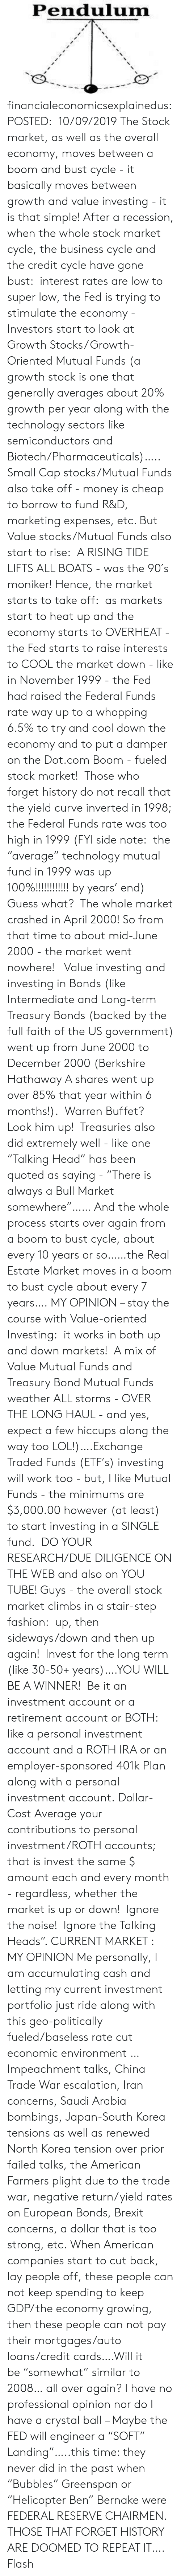 "401k: Pendulum financialeconomicsexplainedus: POSTED:  10/09/2019 The Stock market, as well as the overall economy, moves between a boom and bust cycle - it basically moves between growth and value investing - it is that simple! After a recession, when the whole stock market cycle, the business cycle and the credit cycle have gone bust:  interest rates are low to super low, the Fed is trying to stimulate the economy - Investors start to look at Growth Stocks/ Growth-Oriented Mutual Funds (a growth stock is one that generally averages about 20% growth per year along with the technology sectors like semiconductors and Biotech/Pharmaceuticals)….. Small Cap stocks/Mutual Funds also take off - money is cheap to borrow to fund R&D, marketing expenses, etc.  But Value stocks/Mutual Funds also start to rise:  A RISING TIDE LIFTS ALL BOATS - was the 90′s moniker! Hence, the market starts to take off:  as markets start to heat up and the economy starts to OVERHEAT - the Fed starts to raise interests to COOL the market down - like in November 1999 - the Fed had raised the Federal Funds rate way up to a whopping 6.5% to try and cool down the economy and to put a damper on the Dot.com Boom - fueled stock market!   Those who forget history do not recall that the yield curve inverted in 1998; the Federal Funds rate was too high in 1999 (FYI side note:  the ""average"" technology mutual fund in 1999 was up 100%!!!!!!!!!!!! by years' end)  Guess what?  The whole market crashed in April 2000! So from that time to about mid-June 2000 - the market went nowhere!   Value investing and investing in Bonds (like Intermediate and Long-term Treasury Bonds (backed by the full faith of the US government) went up from June 2000 to December 2000 (Berkshire Hathaway A shares went up over 85% that year within 6 months!).  Warren Buffet?  Look him up!  Treasuries also did extremely well - like one ""Talking Head"" has been quoted as saying - ""There is always a Bull Market somewhere""…… And the whole process starts over again from a boom to bust cycle, about every 10 years or so……the Real Estate Market moves in a boom to bust cycle about every 7 years…. MY OPINION – stay the course with Value-oriented Investing:  it works in both up and down markets!  A mix of Value Mutual Funds and Treasury Bond Mutual Funds weather ALL storms - OVER THE LONG HAUL - and yes, expect a few hiccups along the way too LOL!)….Exchange Traded Funds (ETF's) investing will work too - but, I like Mutual Funds - the minimums are $3,000.00 however (at least) to start investing in a SINGLE fund.  DO YOUR RESEARCH/DUE DILIGENCE ON THE WEB and also on YOU TUBE! Guys - the overall stock market climbs in a stair-step fashion:  up, then sideways/down and then up again!  Invest for the long term (like 30-50+ years)….YOU WILL BE A WINNER!  Be it an investment account or a retirement account or BOTH:  like a personal investment account and a ROTH IRA or an employer-sponsored 401k Plan along with a personal investment account. Dollar-Cost Average your contributions to personal investment/ROTH accounts; that is invest the same $ amount each and every month - regardless, whether the market is up or down!  Ignore the noise!  Ignore the Talking Heads"". CURRENT MARKET :  MY OPINION Me personally, I am accumulating cash and letting my current investment portfolio just ride along with this geo-politically fueled/baseless rate cut economic environment …Impeachment talks, China Trade War escalation, Iran concerns, Saudi Arabia bombings, Japan-South Korea tensions as well as renewed North Korea tension over prior failed talks, the American Farmers plight due to the trade war, negative return/yield rates on European Bonds, Brexit concerns, a dollar that is too strong, etc. When American companies start to cut back, lay people off, these people can not keep spending to keep GDP/the economy growing, then these people can not pay their mortgages/auto loans/credit cards….Will it be ""somewhat"" similar to 2008… all over again?  I have no professional opinion nor do I have a crystal ball – Maybe the FED will engineer a ""SOFT"" Landing""…..this time: they never did in the past when ""Bubbles"" Greenspan or ""Helicopter Ben"" Bernake were FEDERAL RESERVE CHAIRMEN. THOSE THAT FORGET HISTORY ARE DOOMED TO REPEAT IT…. Flash"